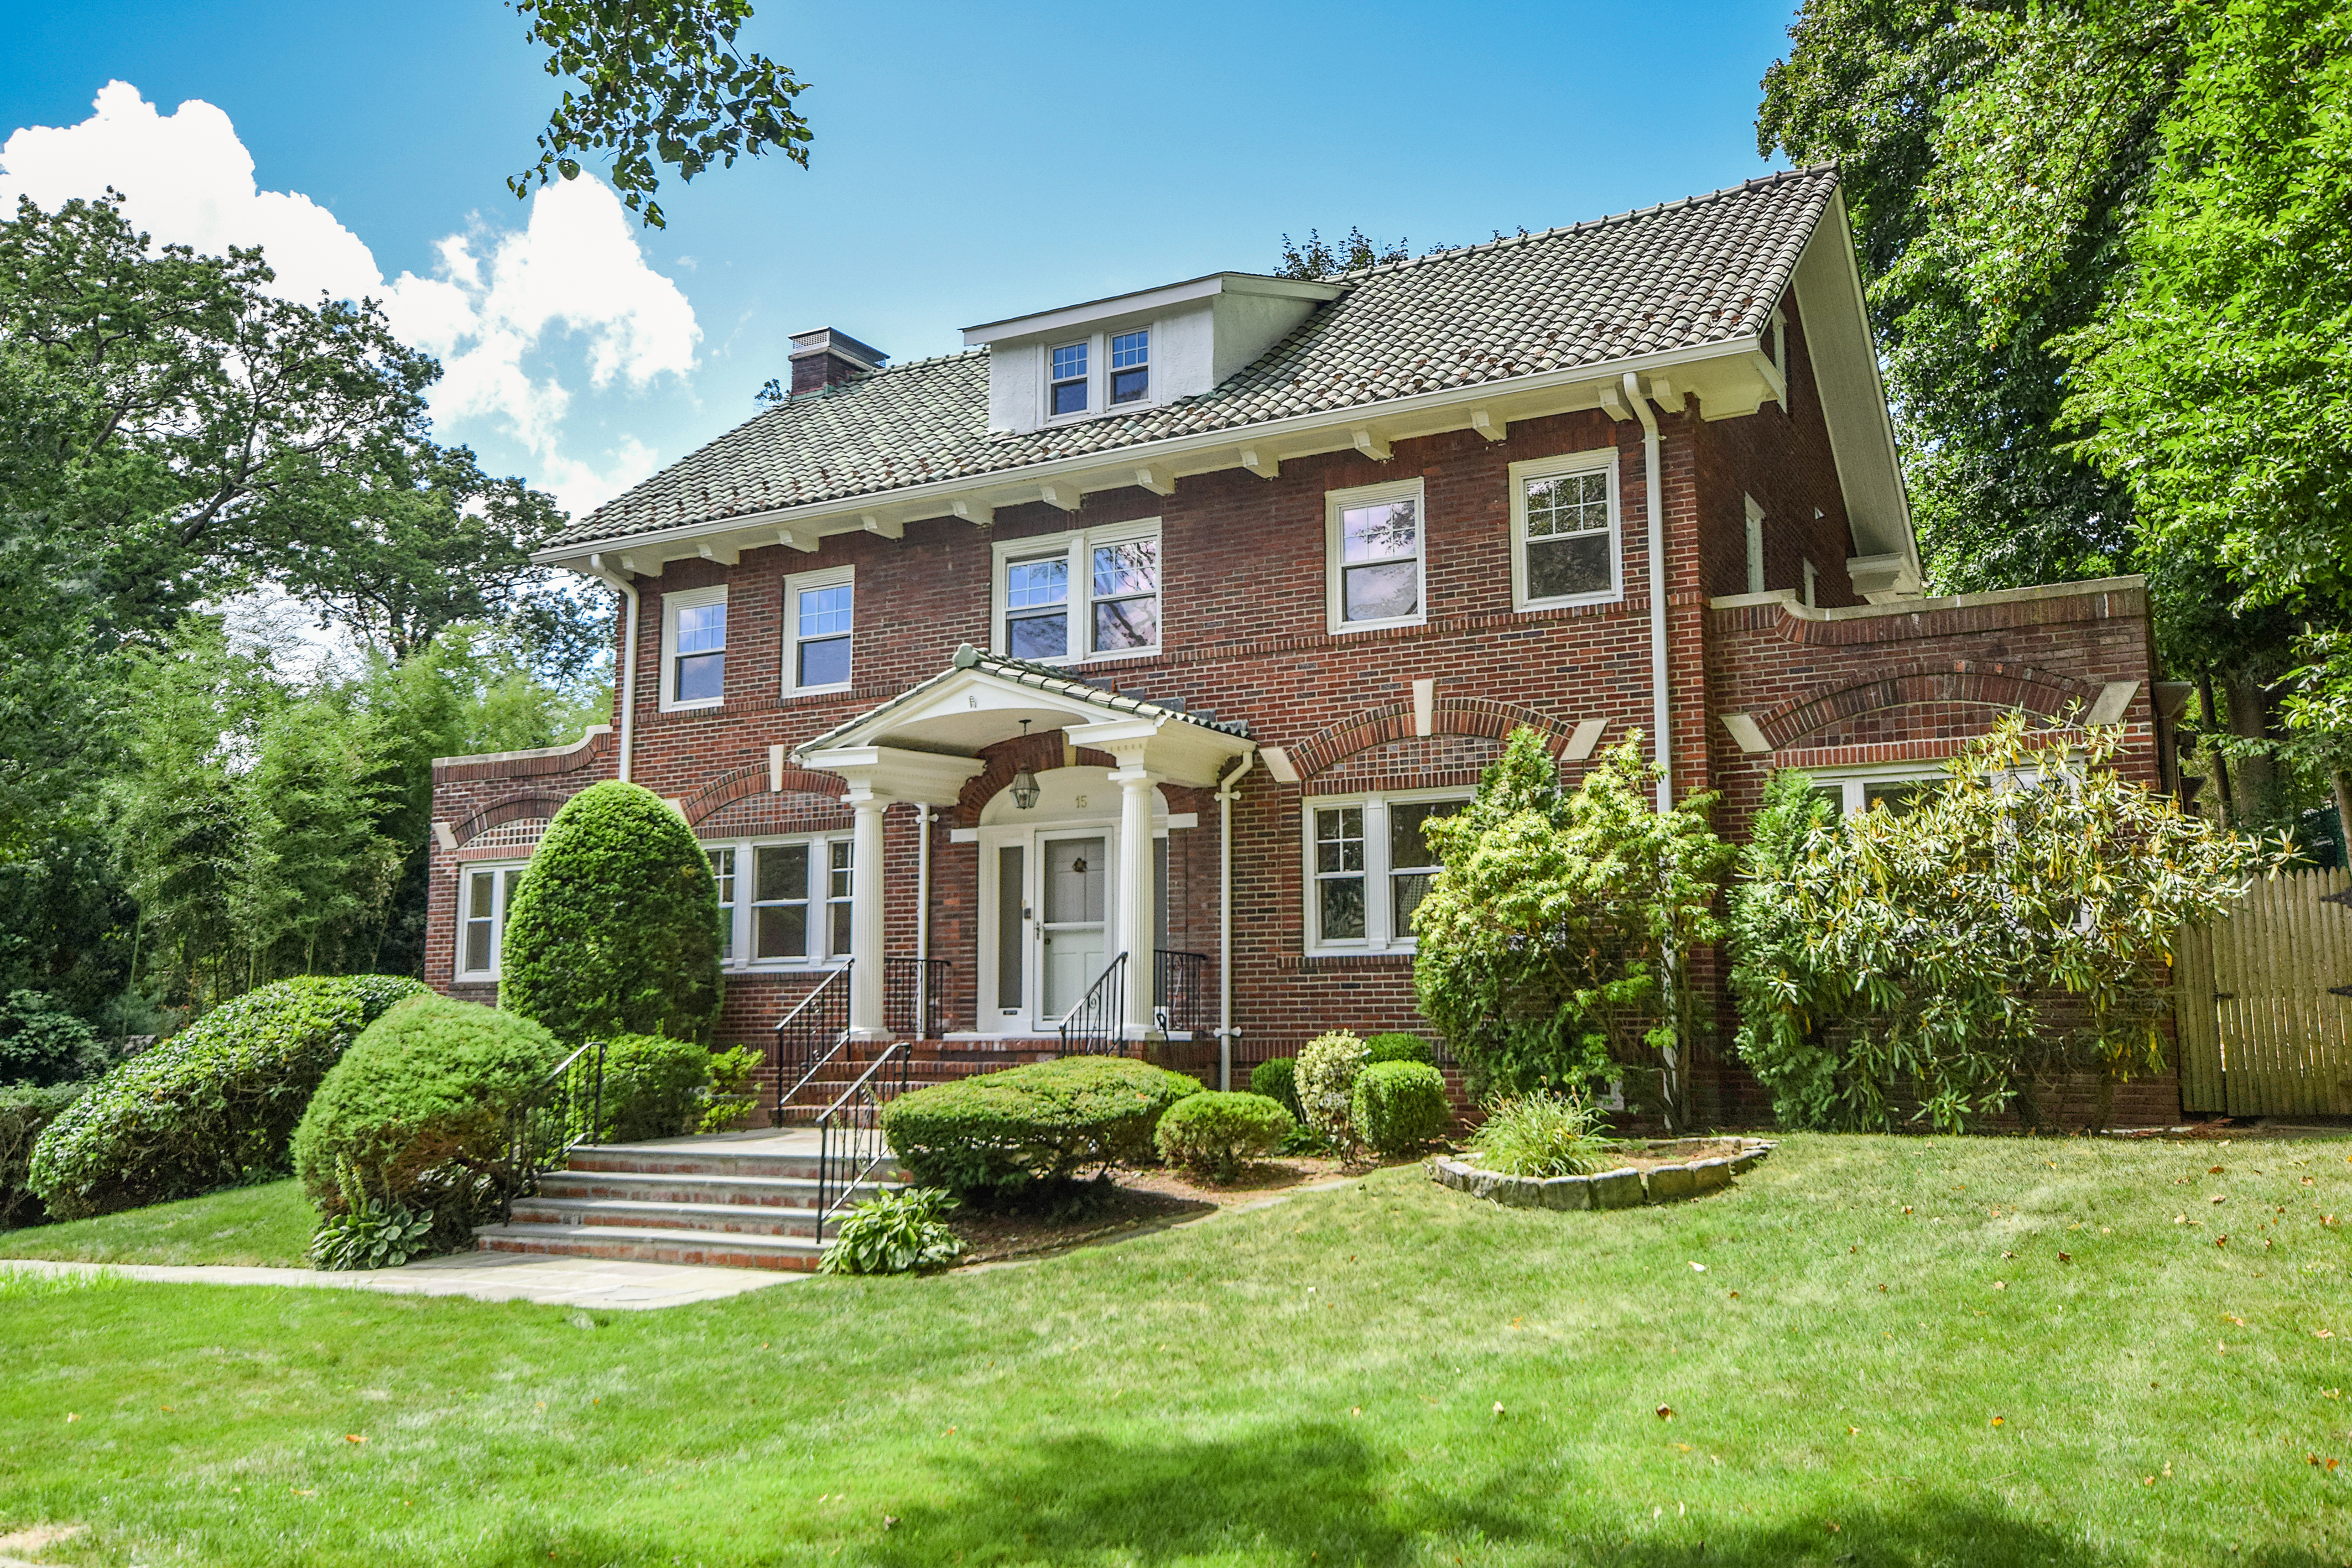 Property For Sale at Classic Brick Colonial